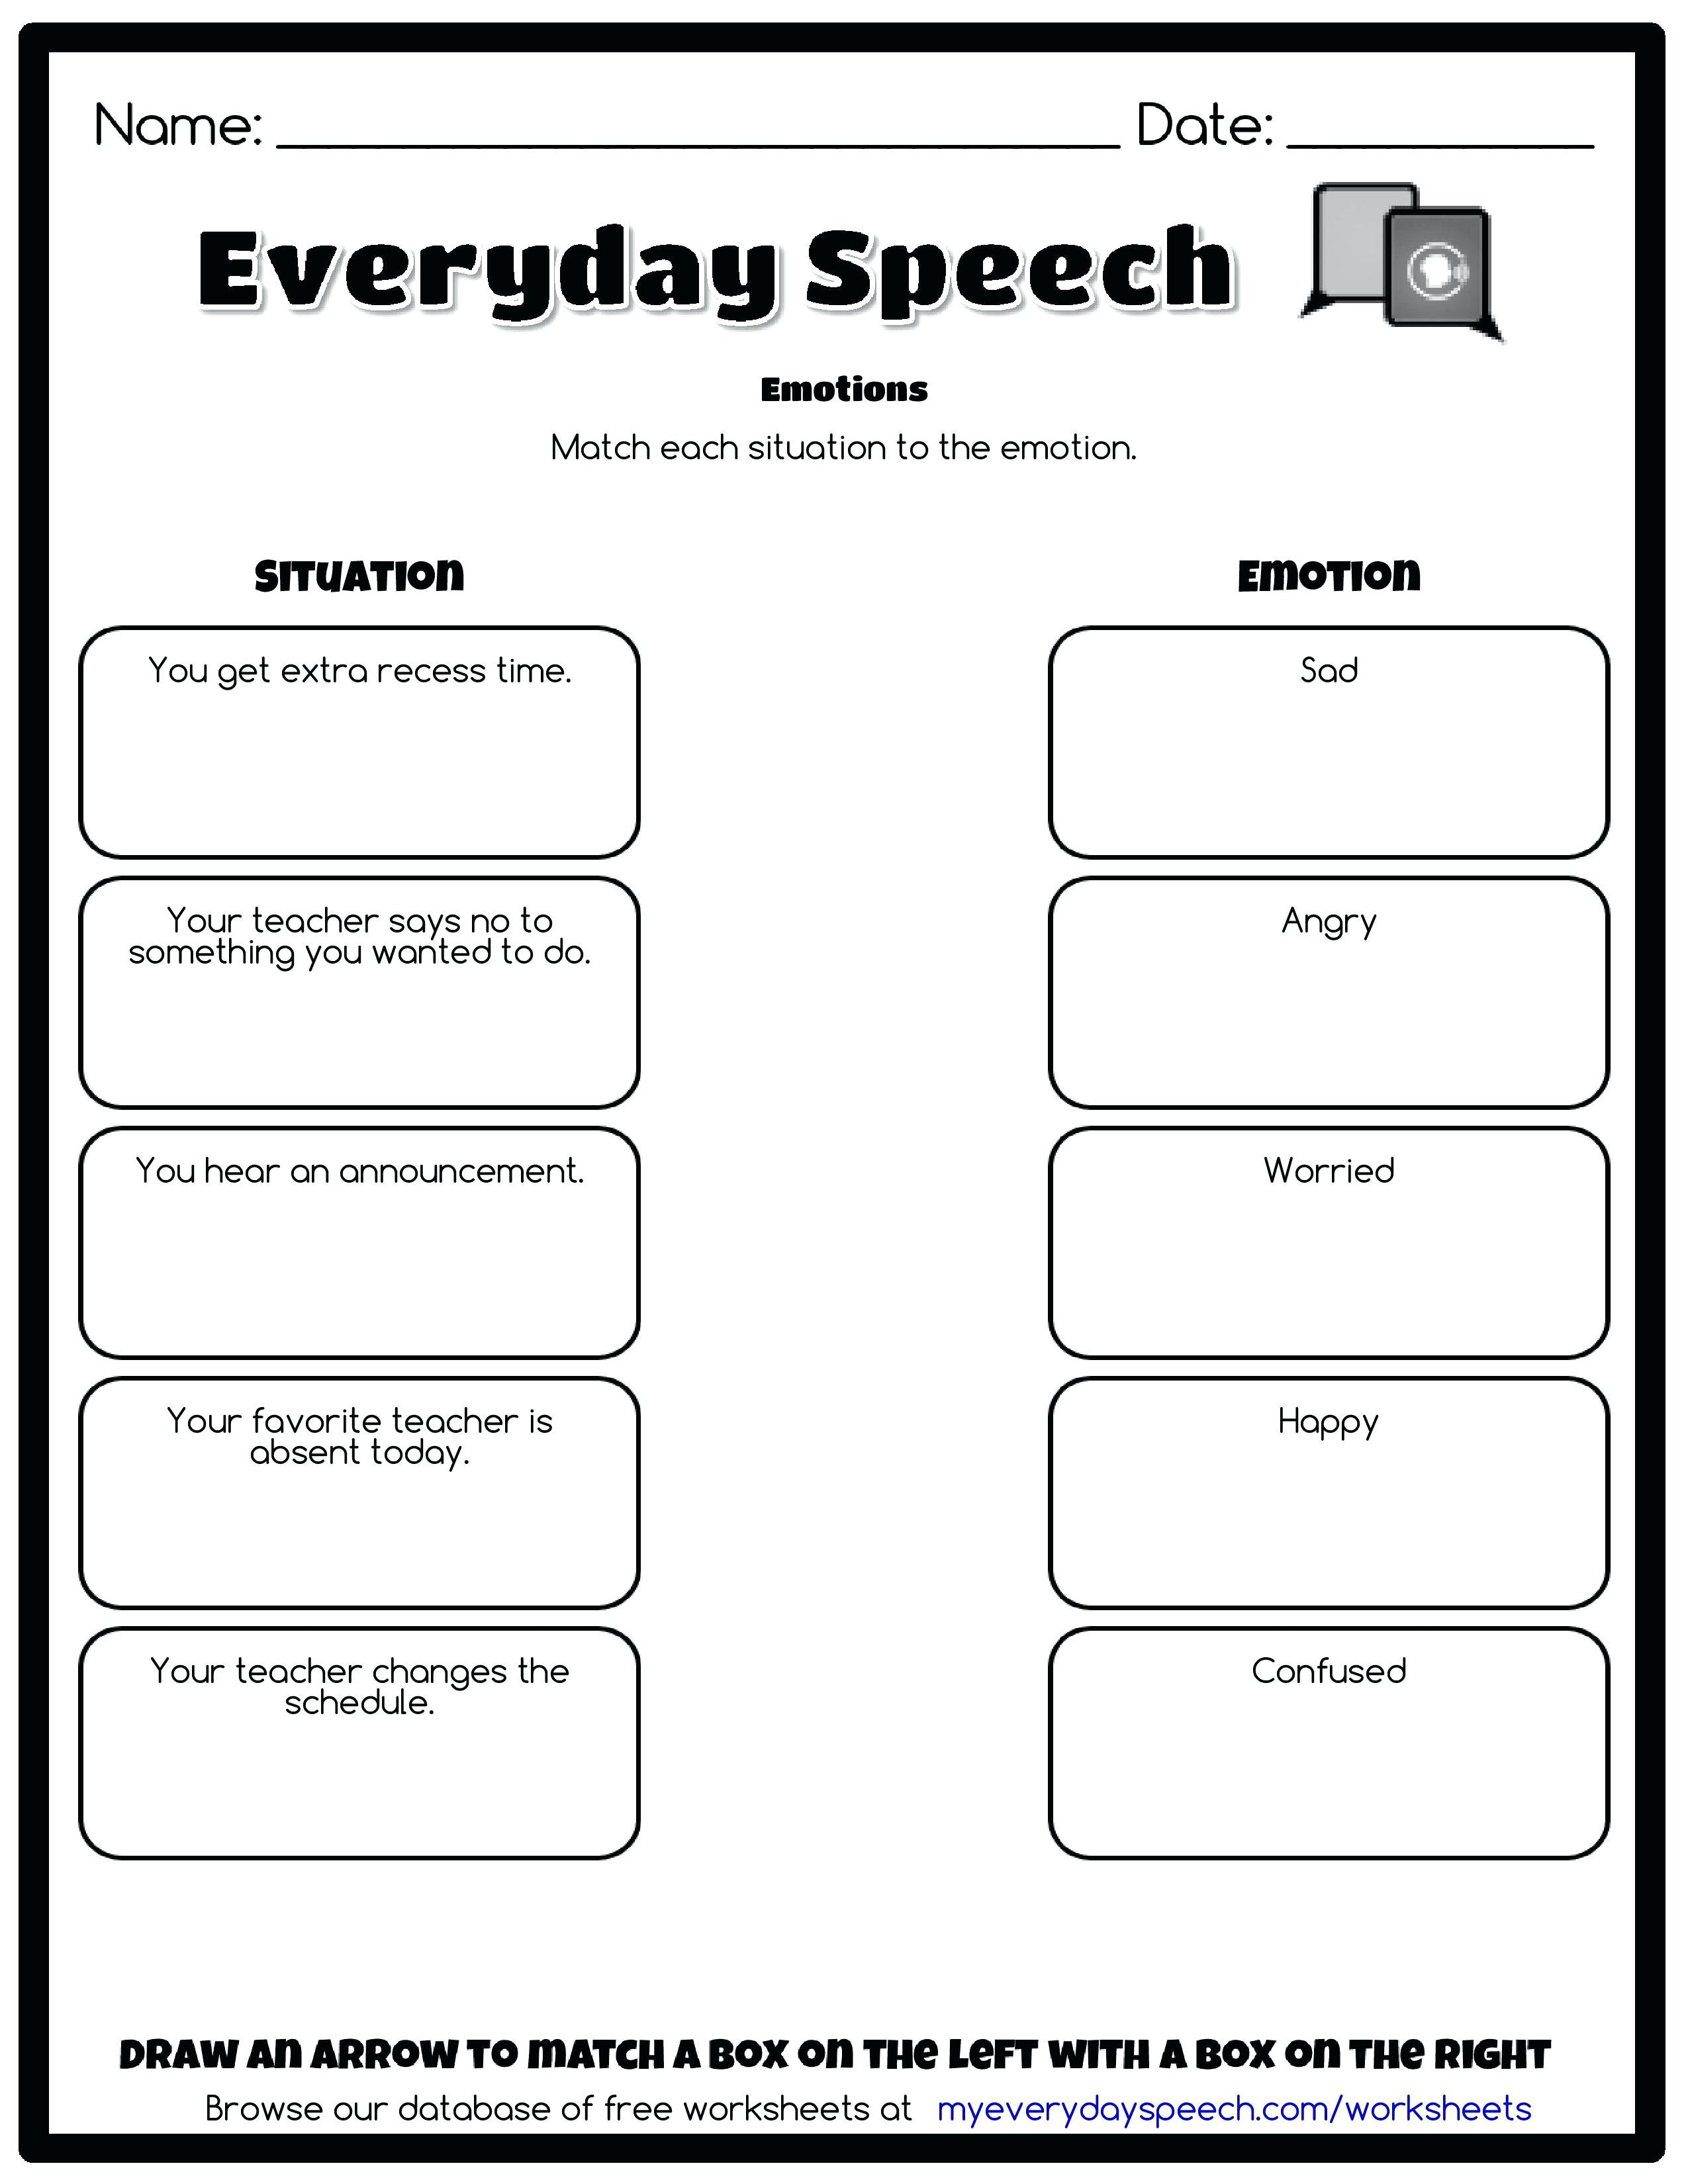 Identifying Emotions Worksheet For Adults — excelguider.com